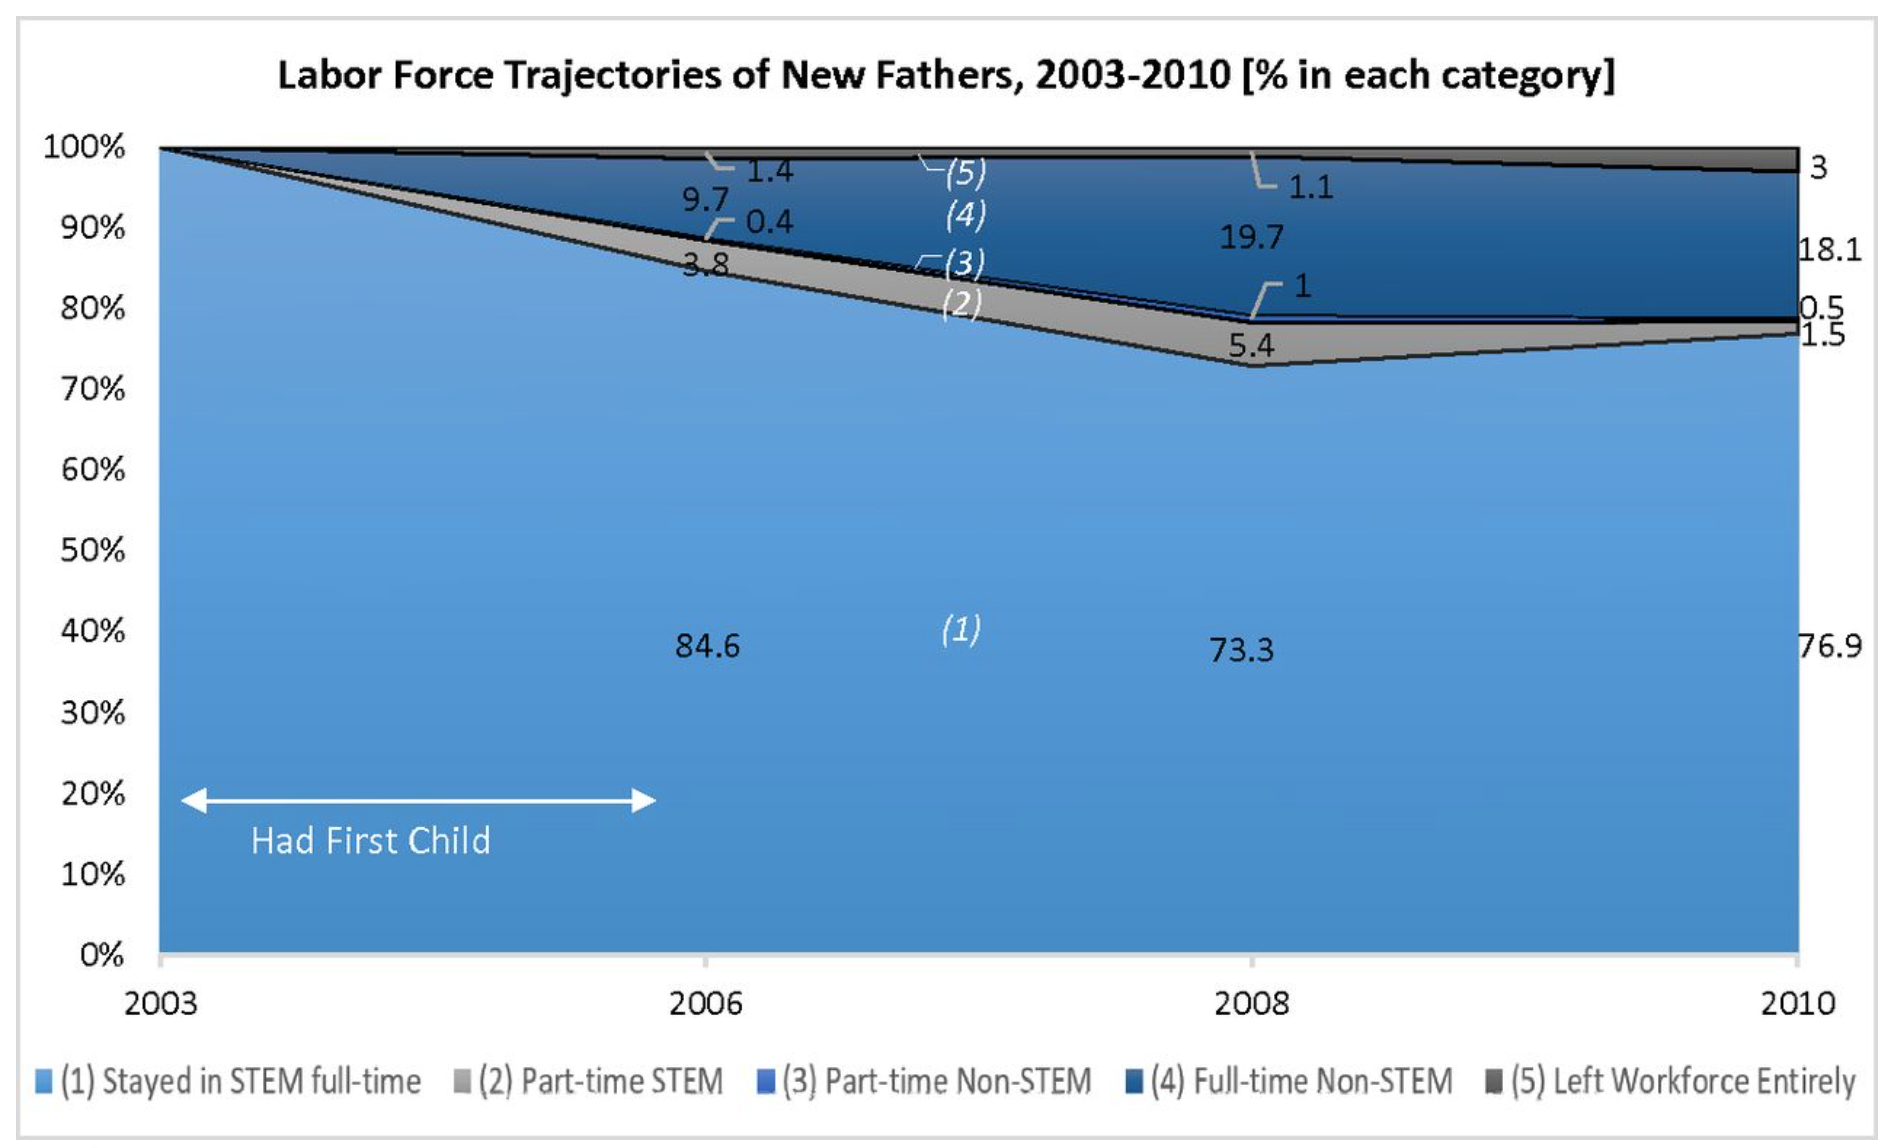 Labor force trajectory of new fathers, 2003-10